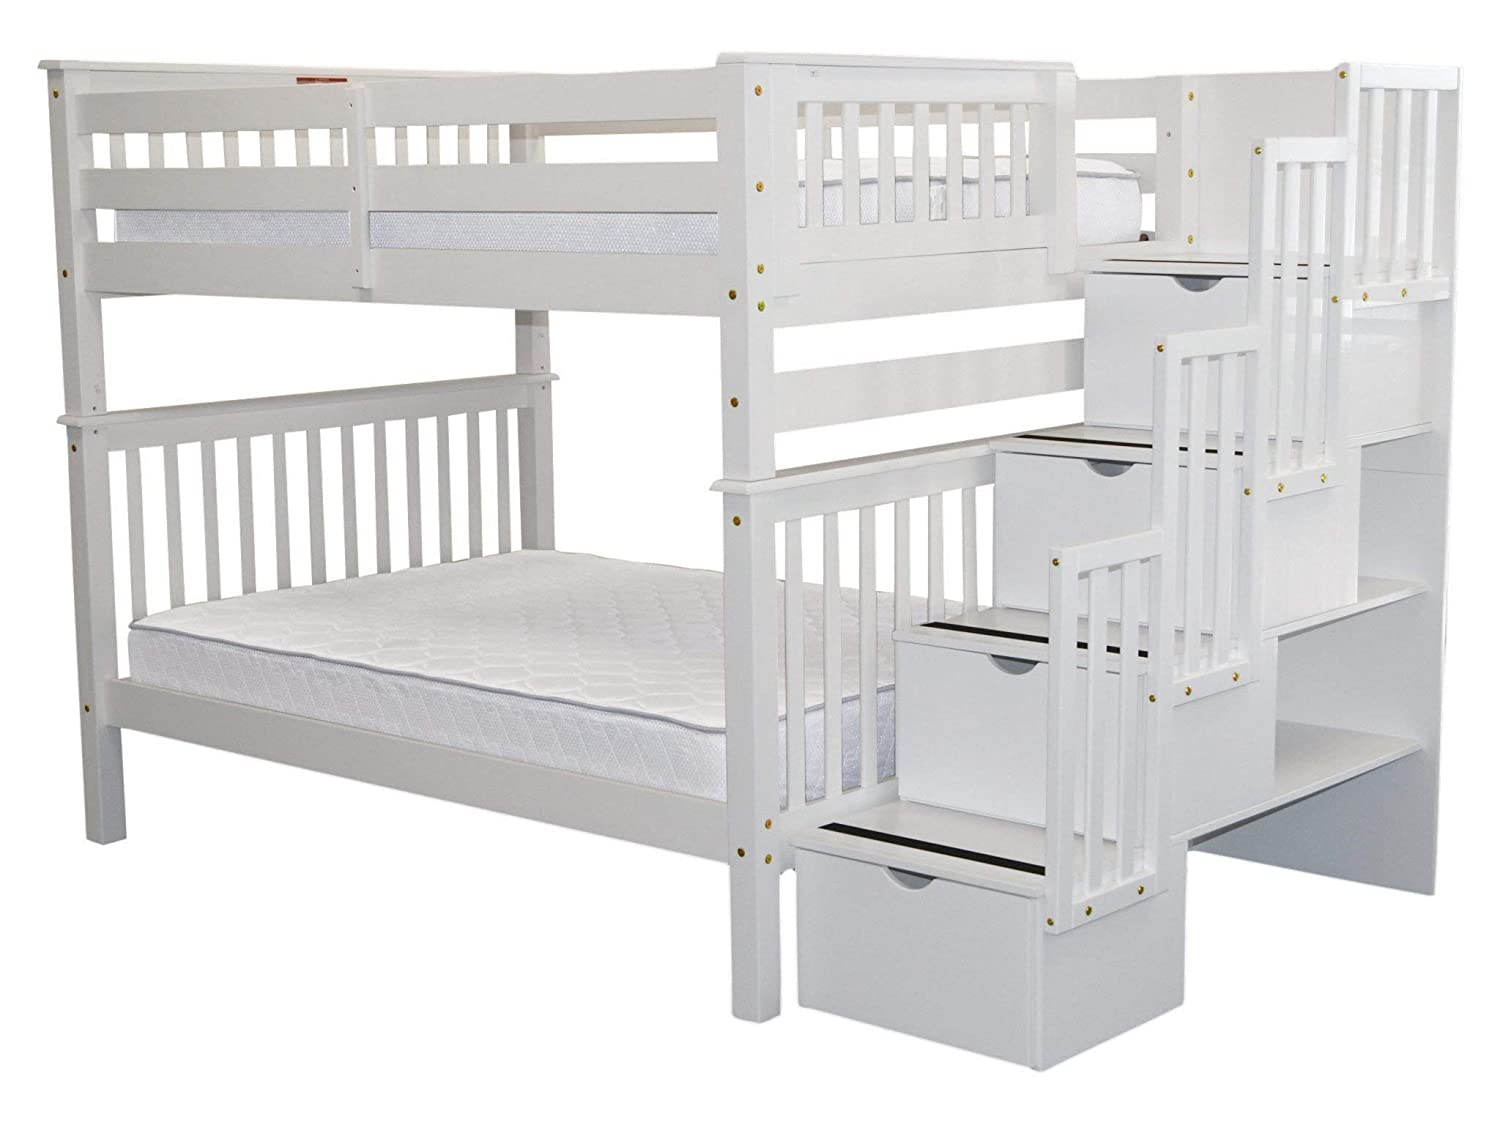 Gray Bedz King Stairway Bunk Beds Full Over Full With 4 Drawers In The Steps Kids Furniture Toys Games Malibukohsamui Com